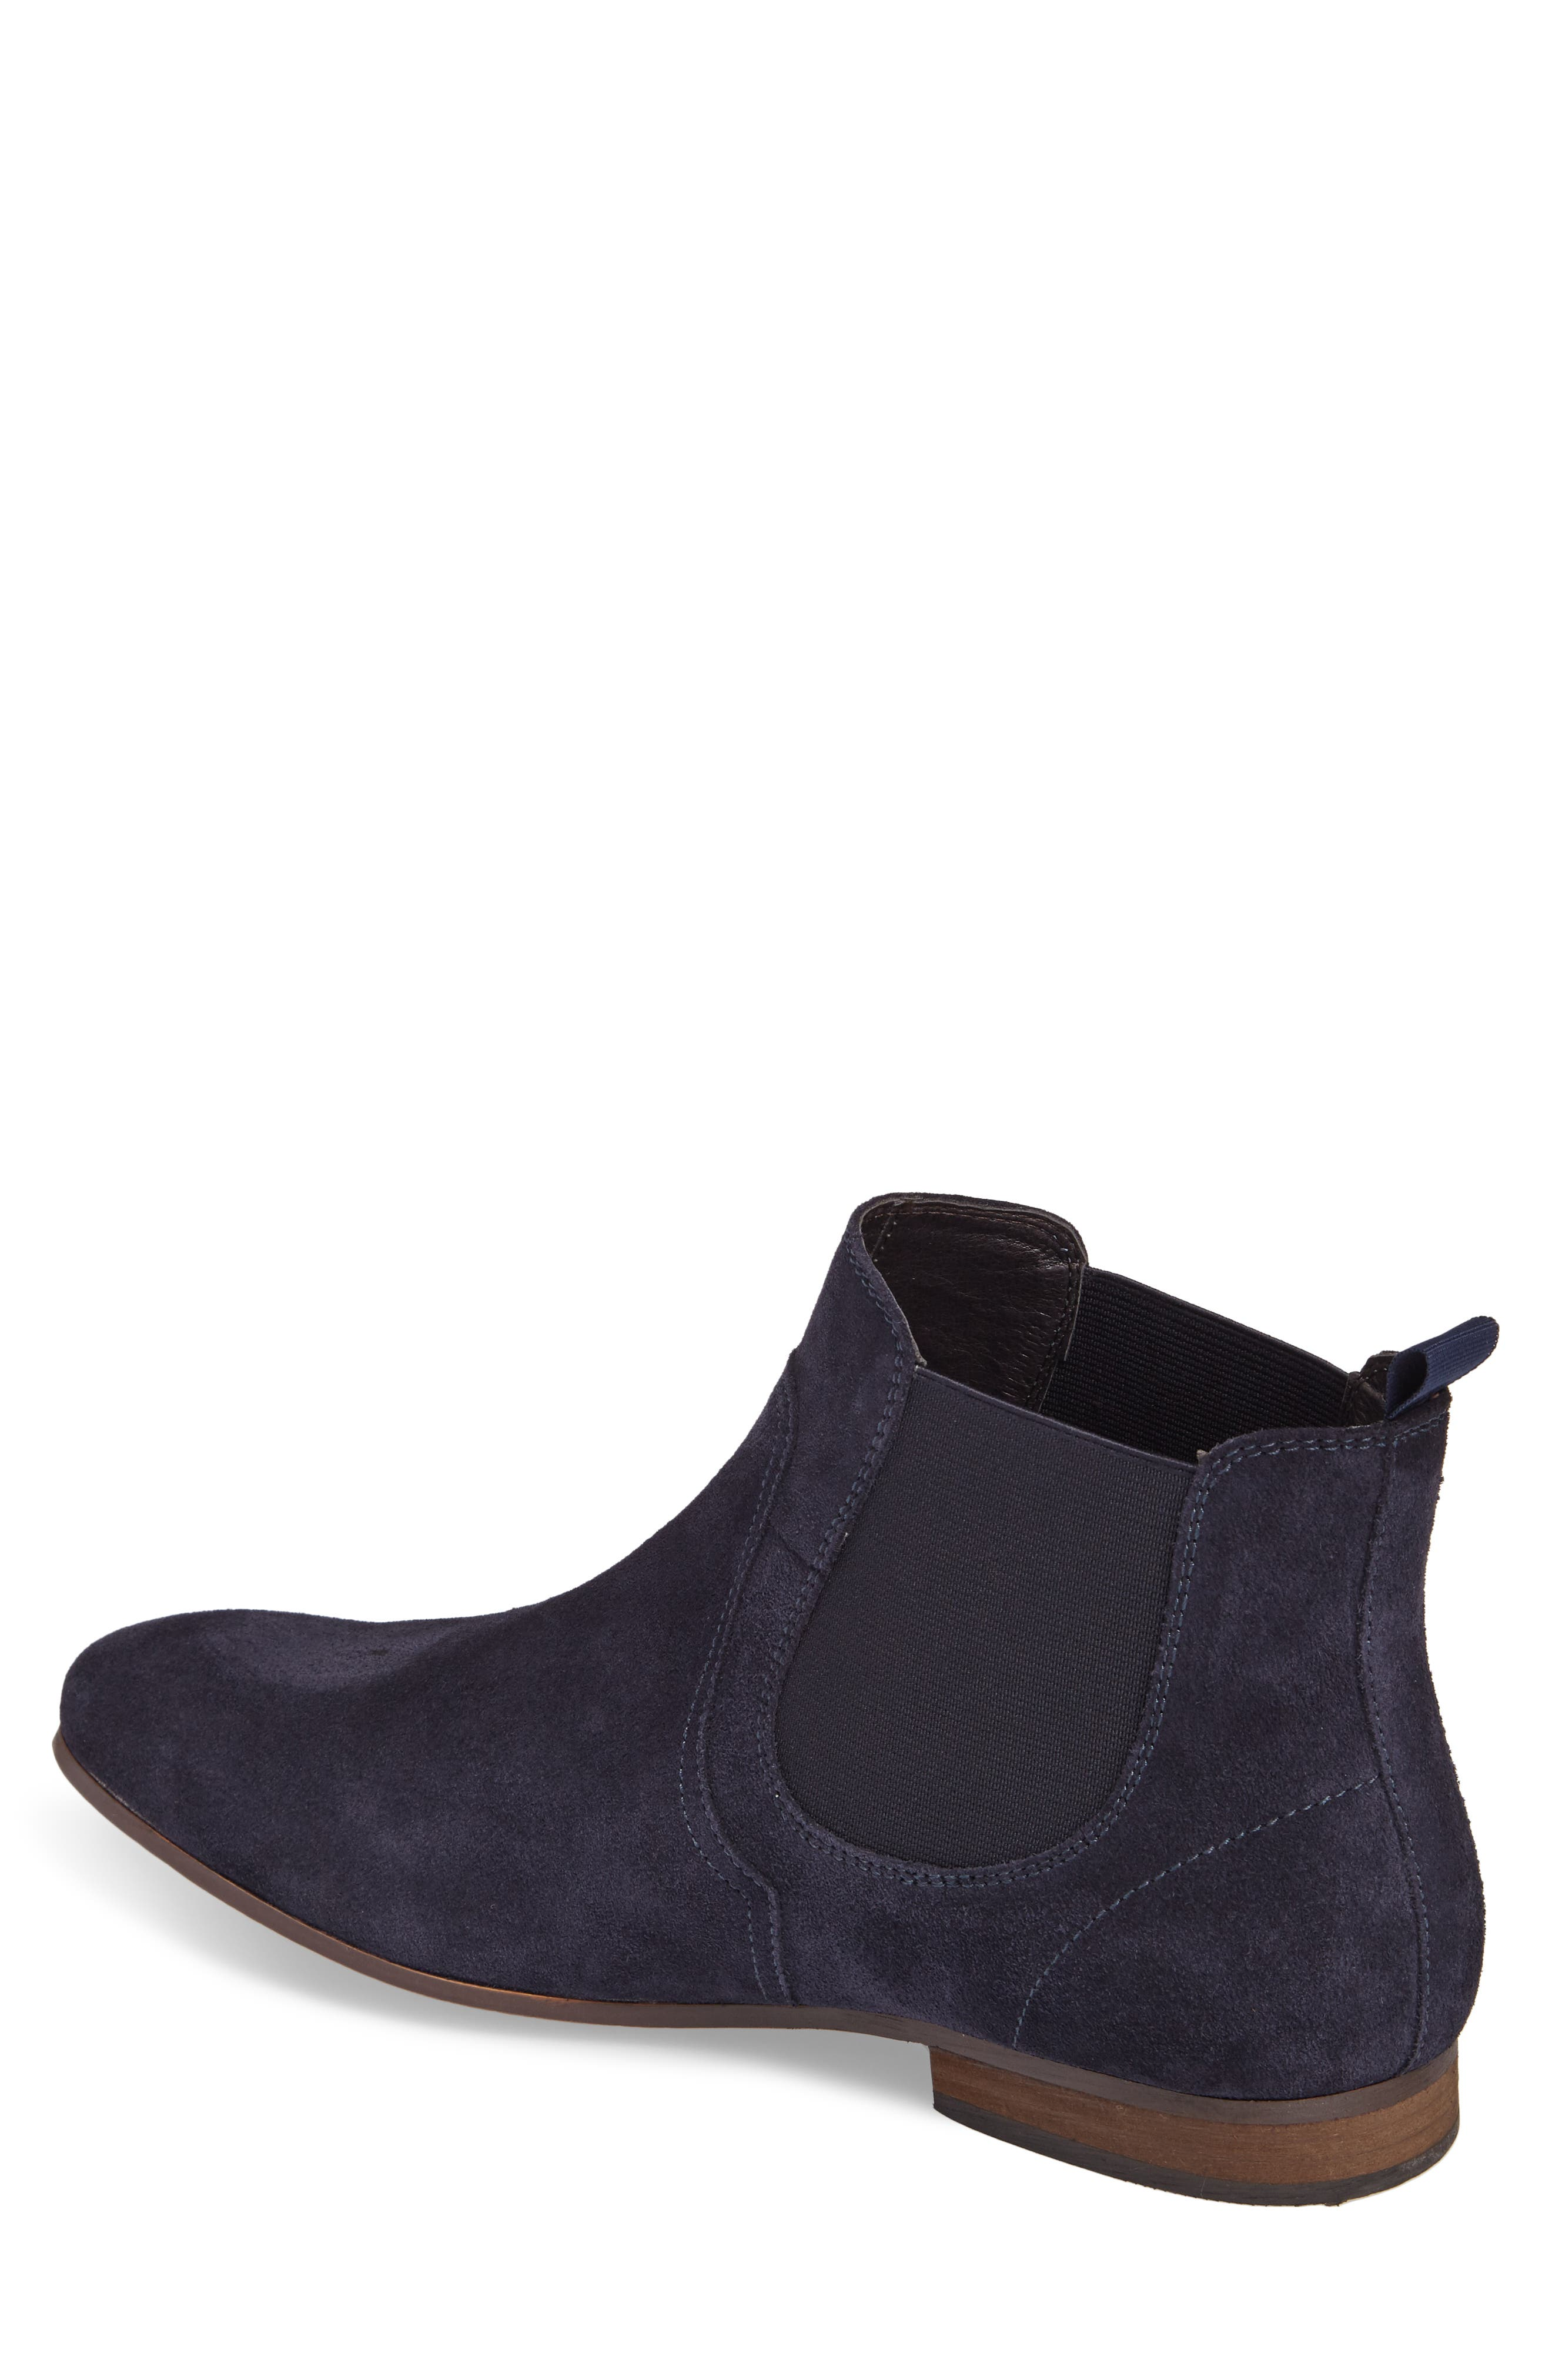 Brysen Chelsea Boot,                             Alternate thumbnail 32, color,